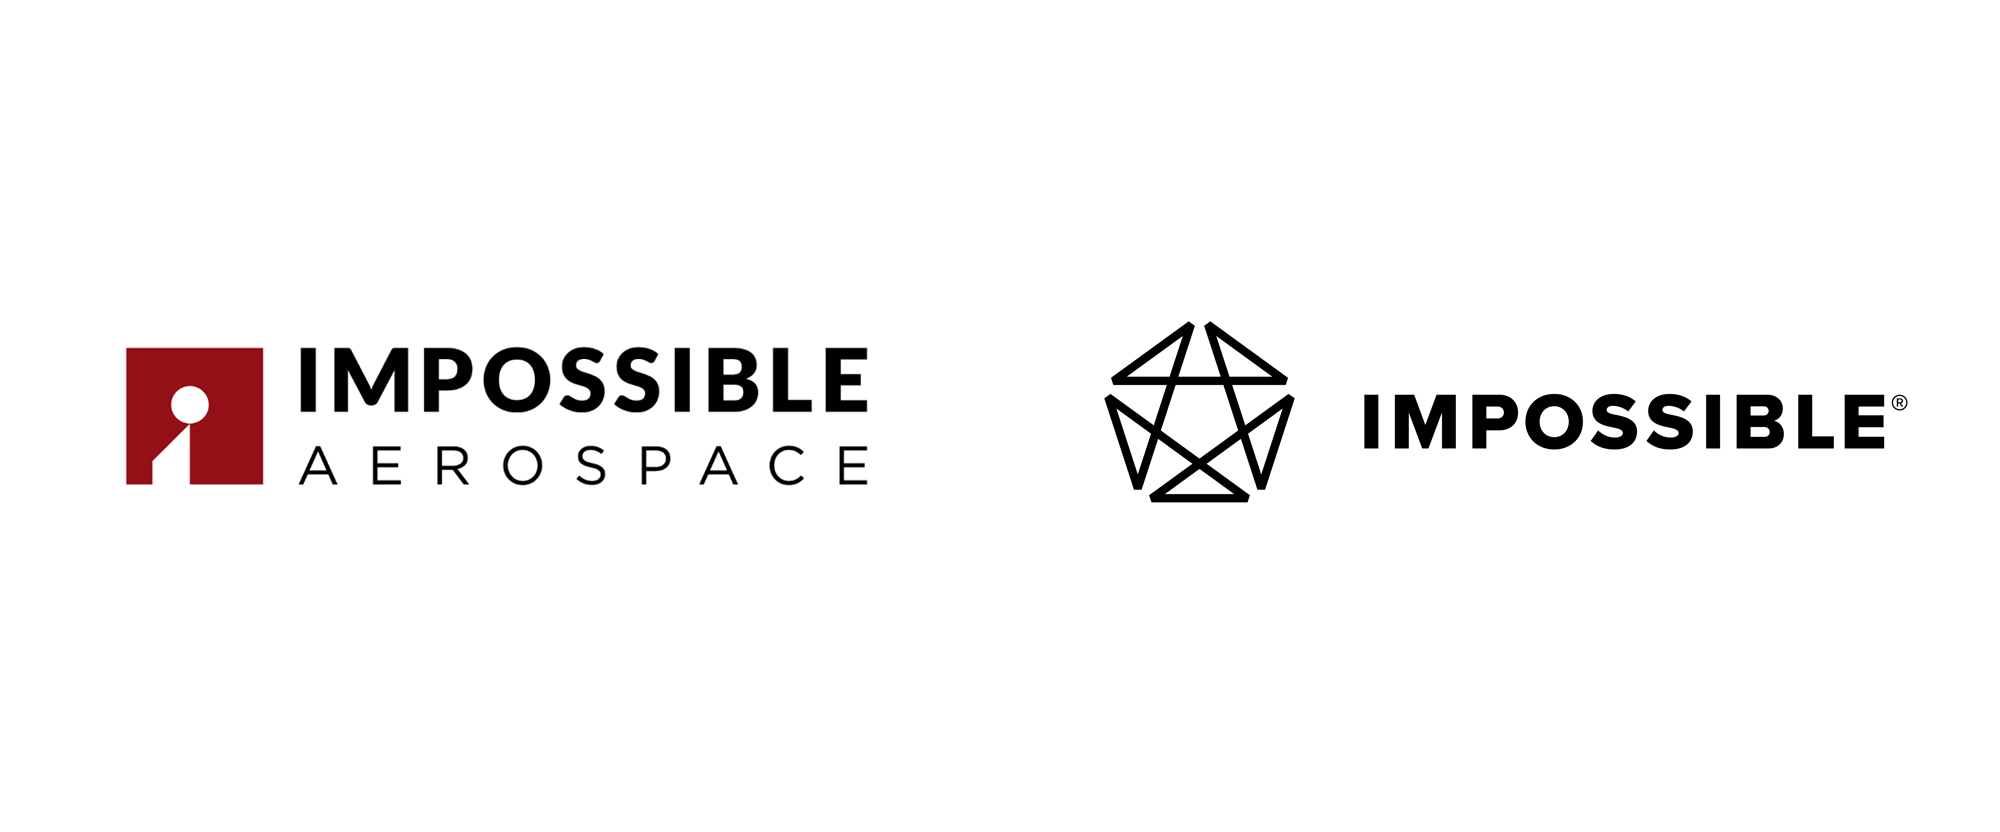 New Logo and Identity for Impossible Aerospace by Chermayeff & Geismar & Haviv